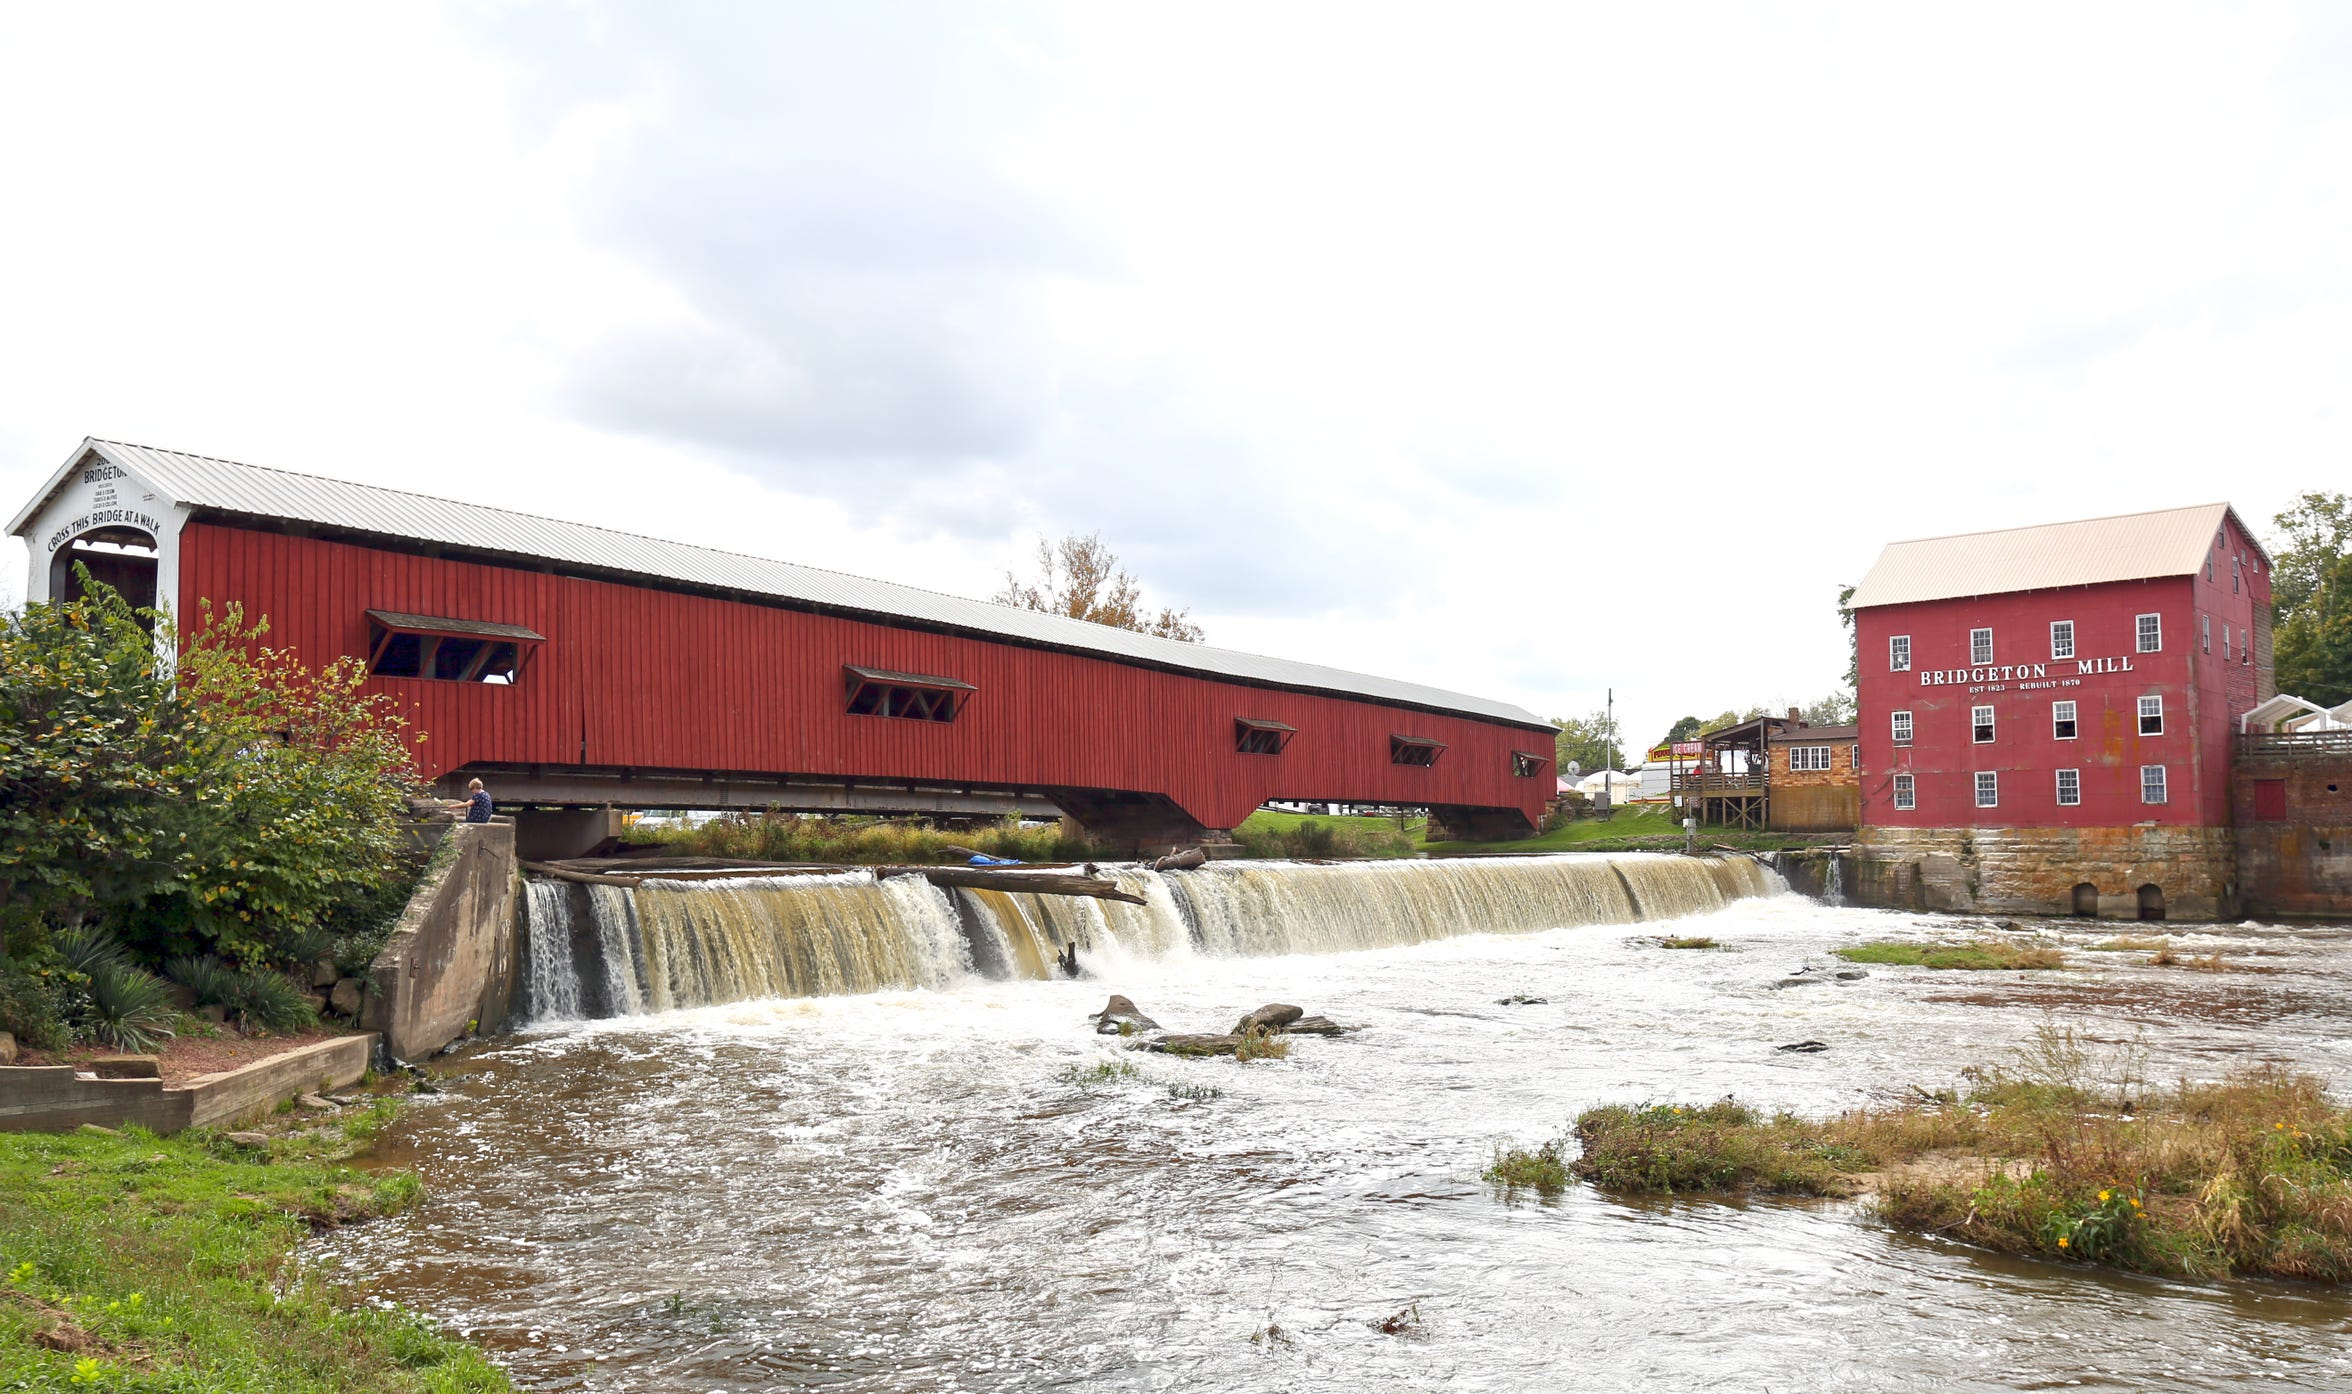 The Bridgeton covered bridge in Parke County is considered Indiana's most famous covered bridge. Shown here on Oct. 9, 2018.